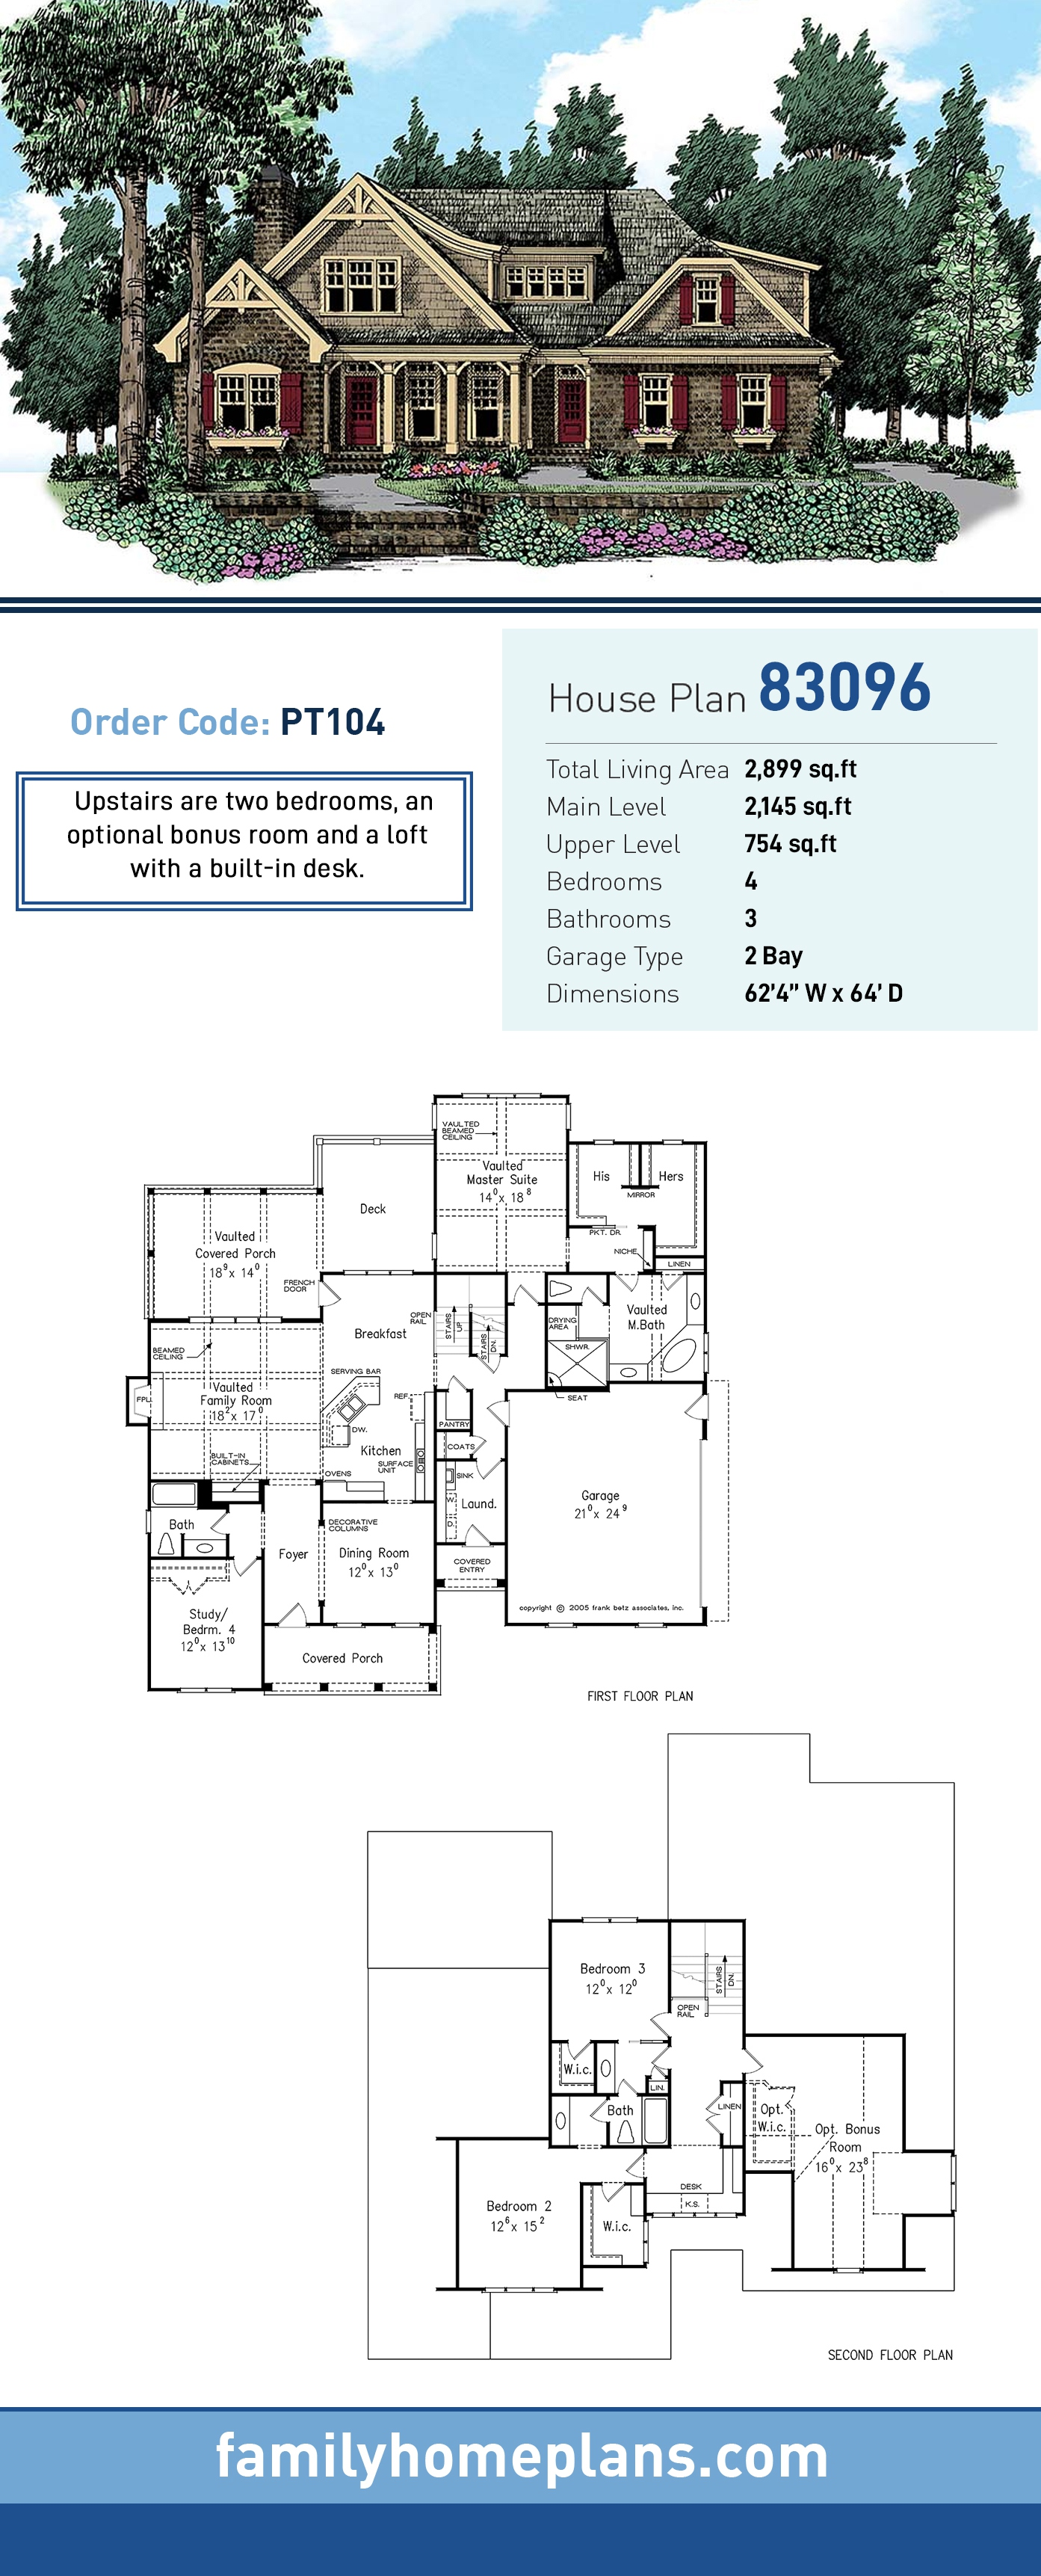 Cottage, Country, Craftsman, Traditional House Plan 83096 with 4 Beds, 3 Baths, 2 Car Garage